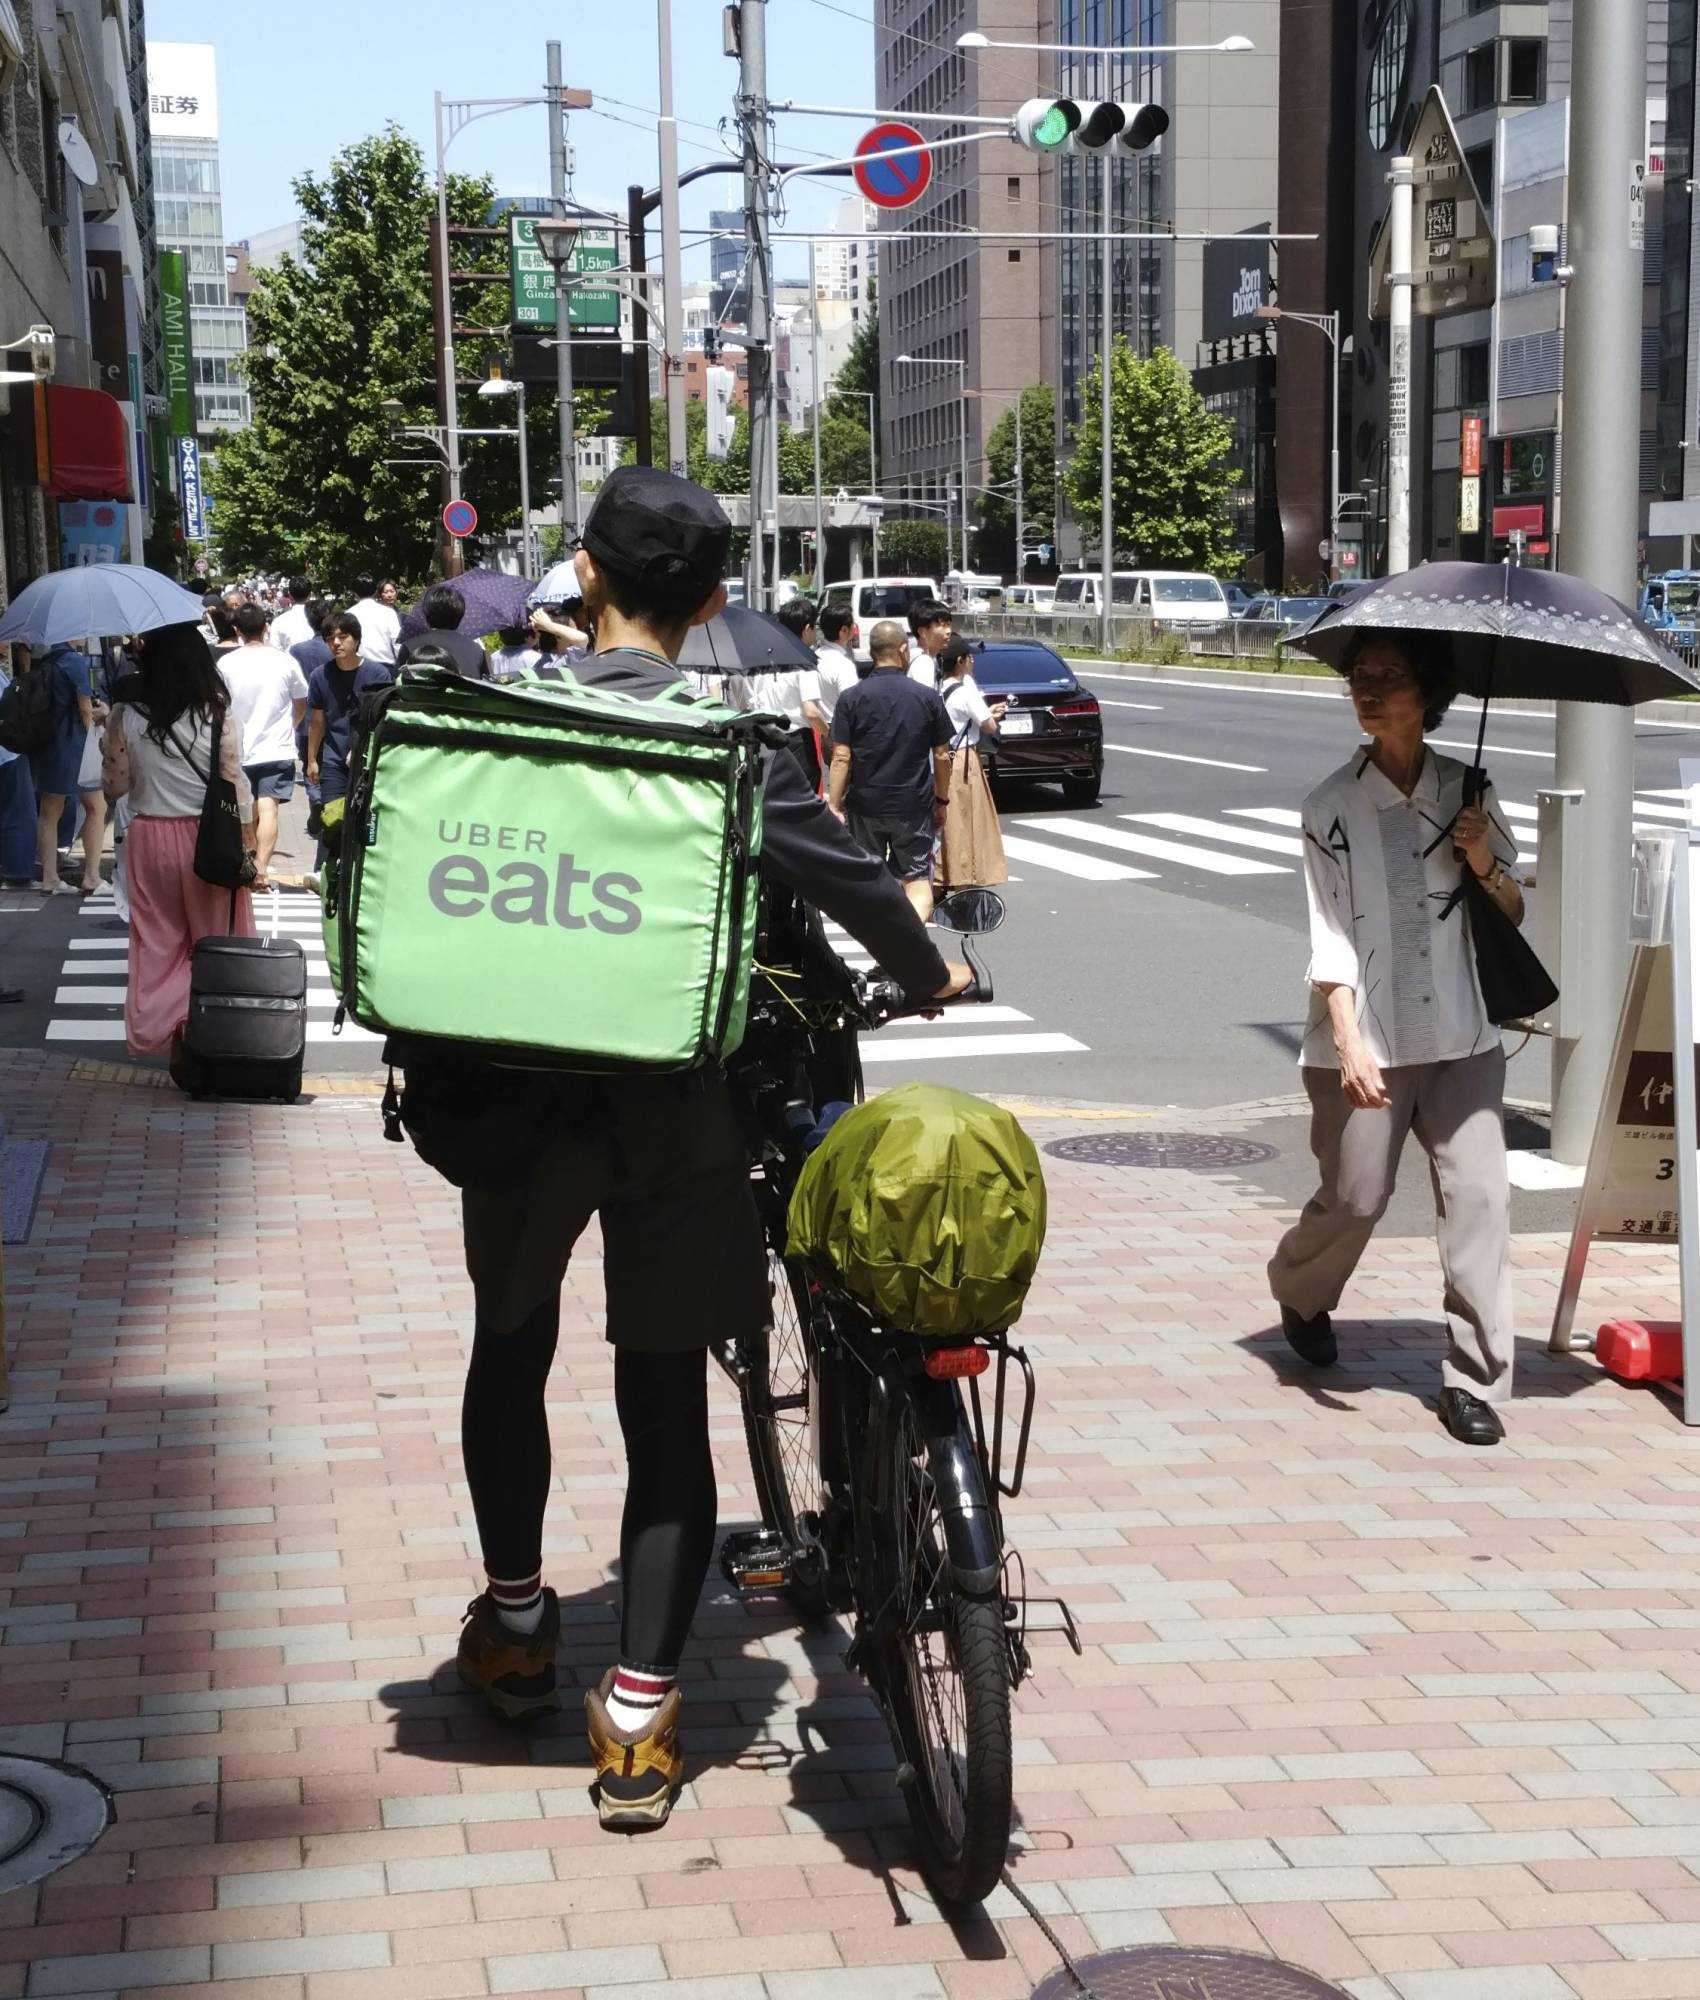 A labor union representing Uber Eats delivery staff in Japan is demanding hazard pay and protection against the novel coronavirus. | KYODO